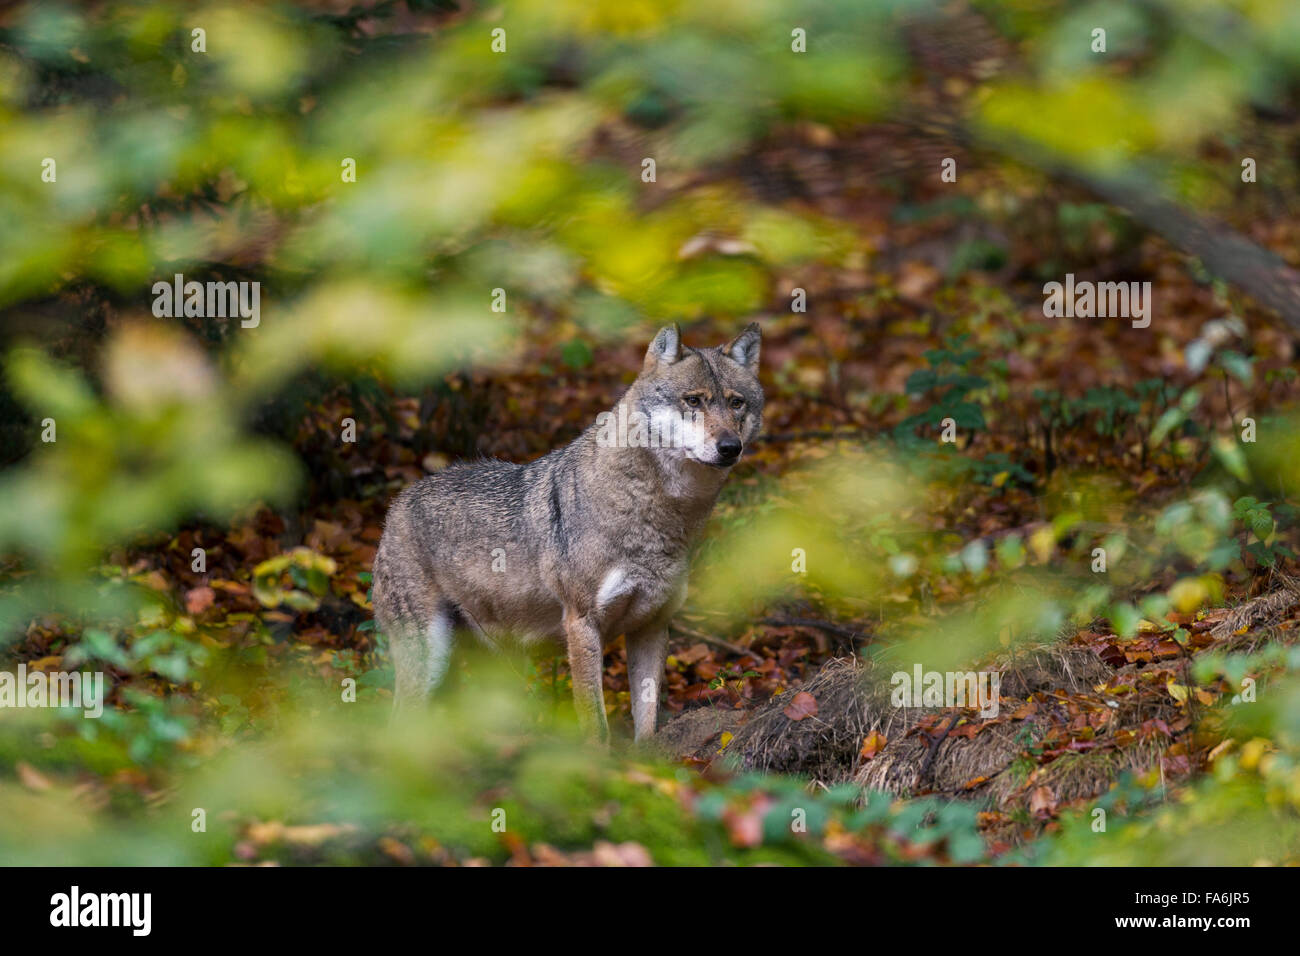 European grey wolf (Canis lupus) in autumn forest seen through foliage of undergrowth Stock Photo